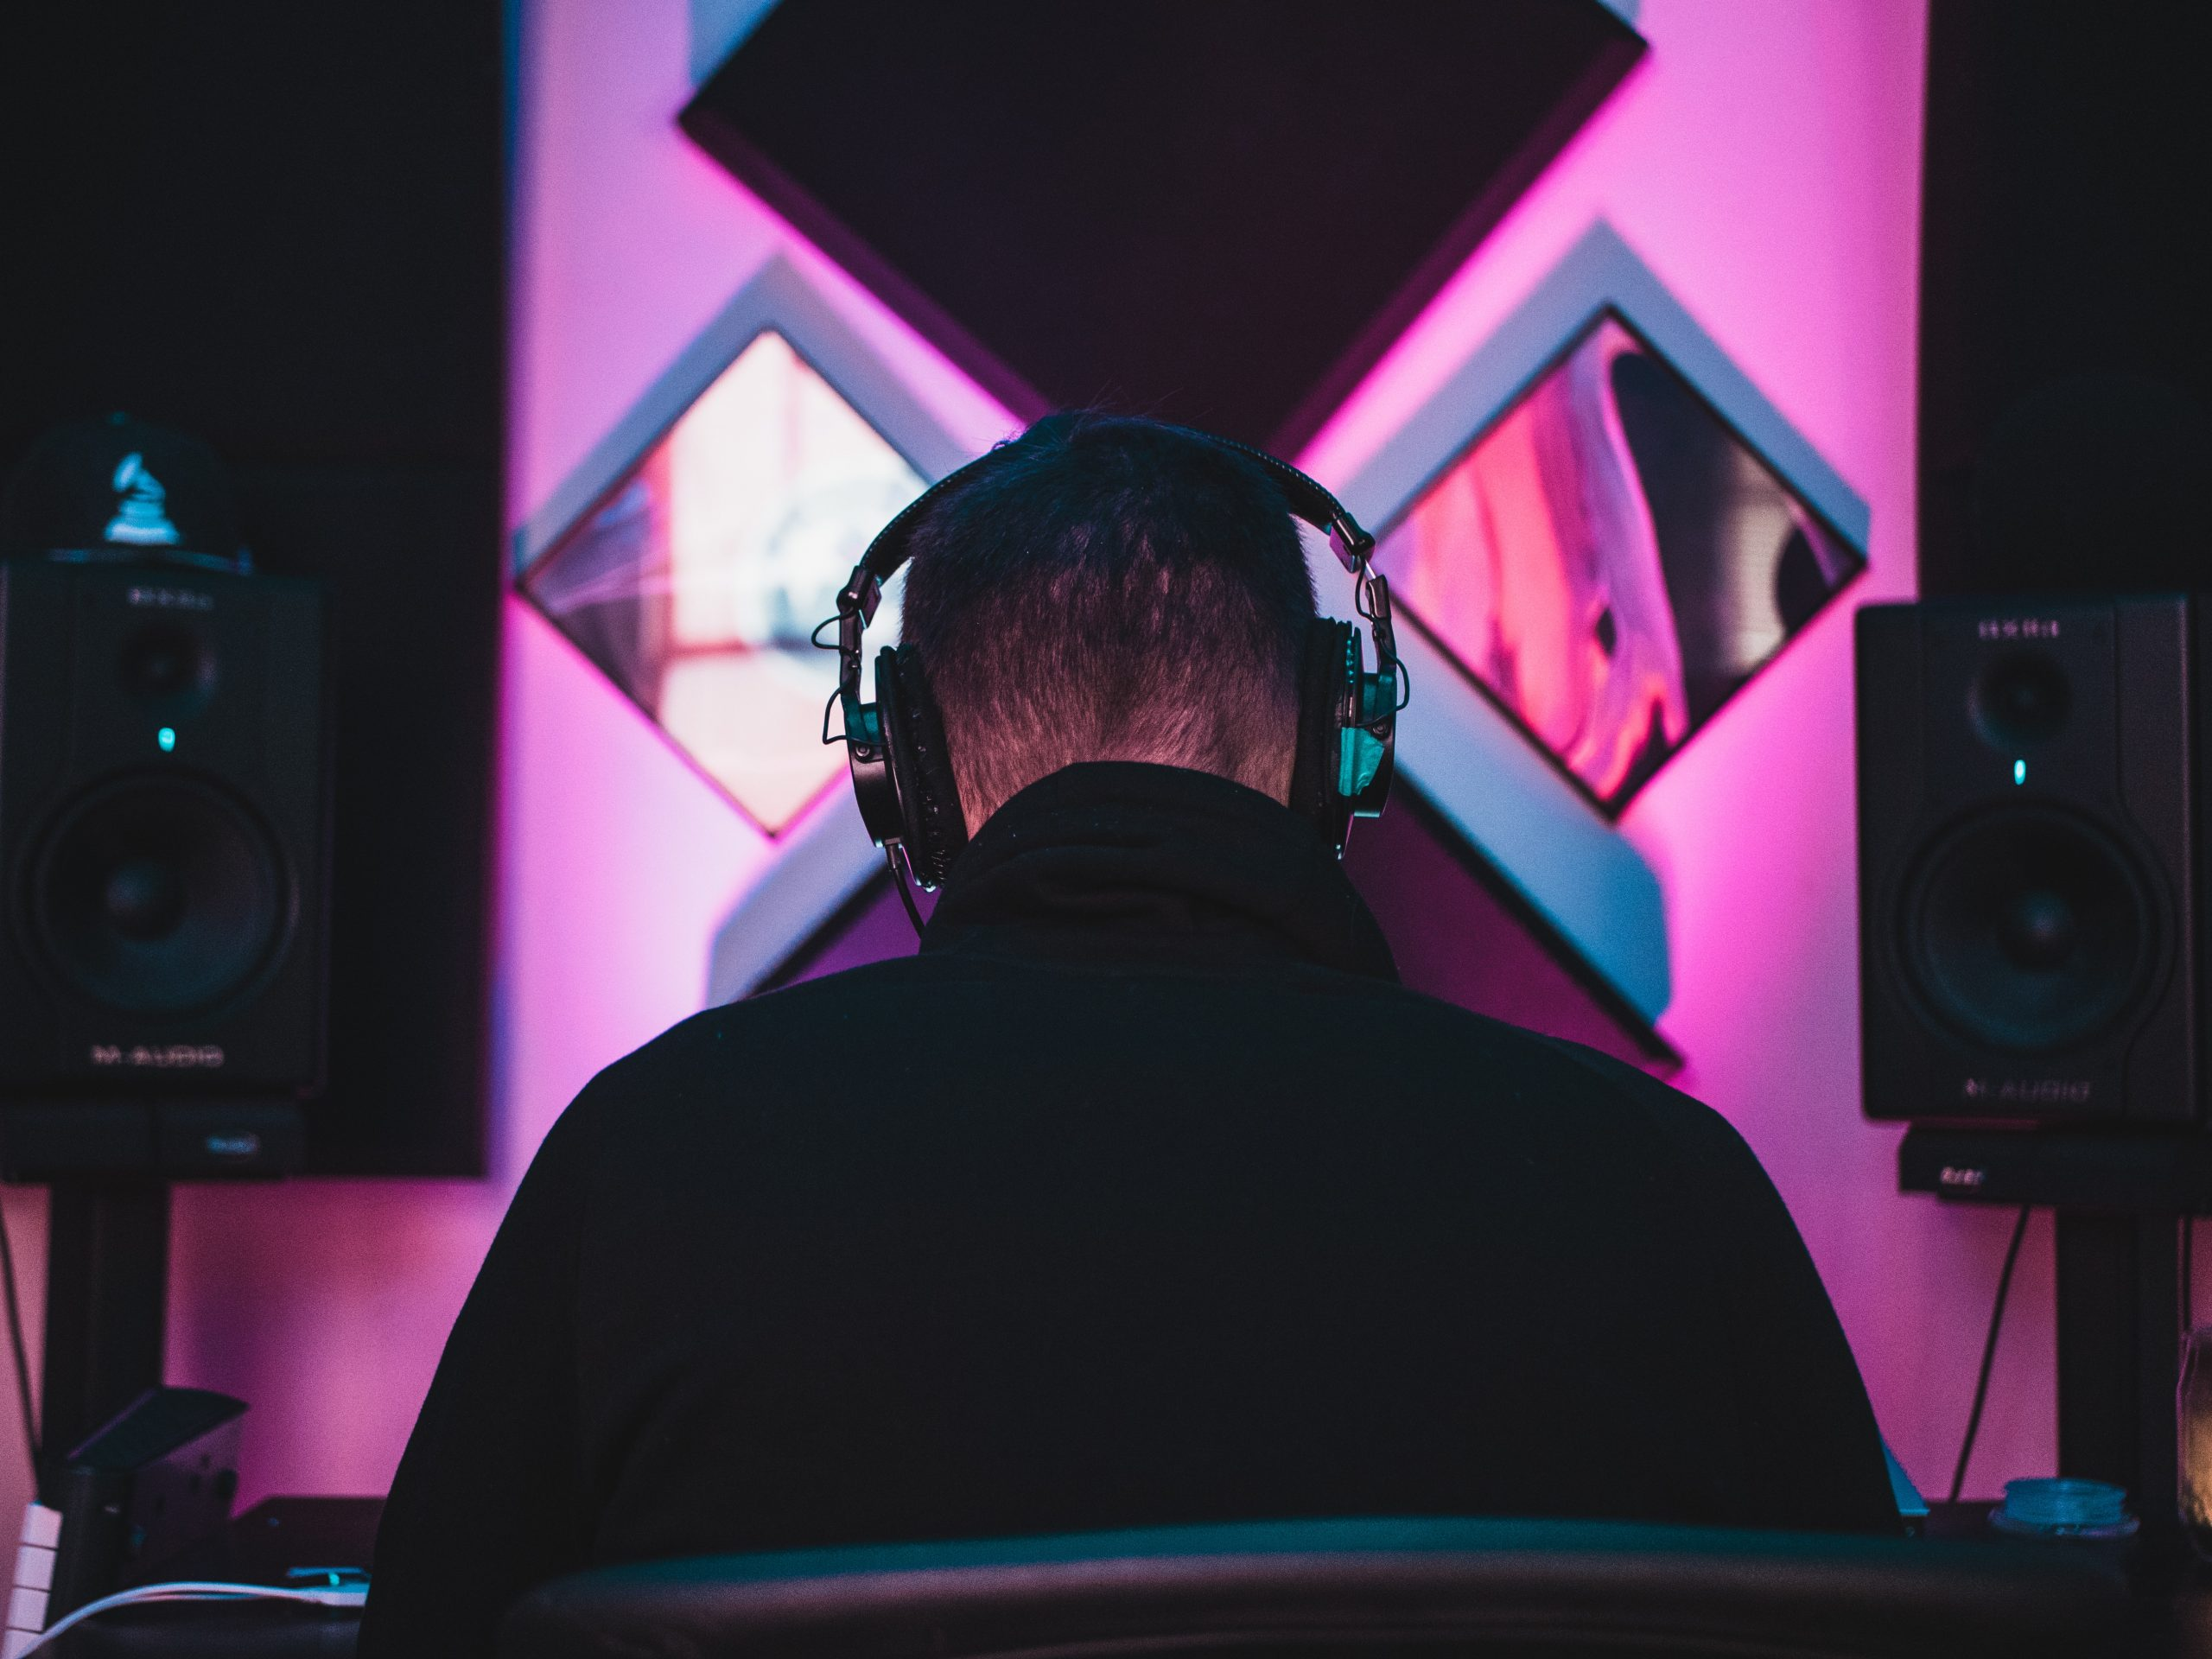 person wearing black headphones trying how to become a voice actor for video games